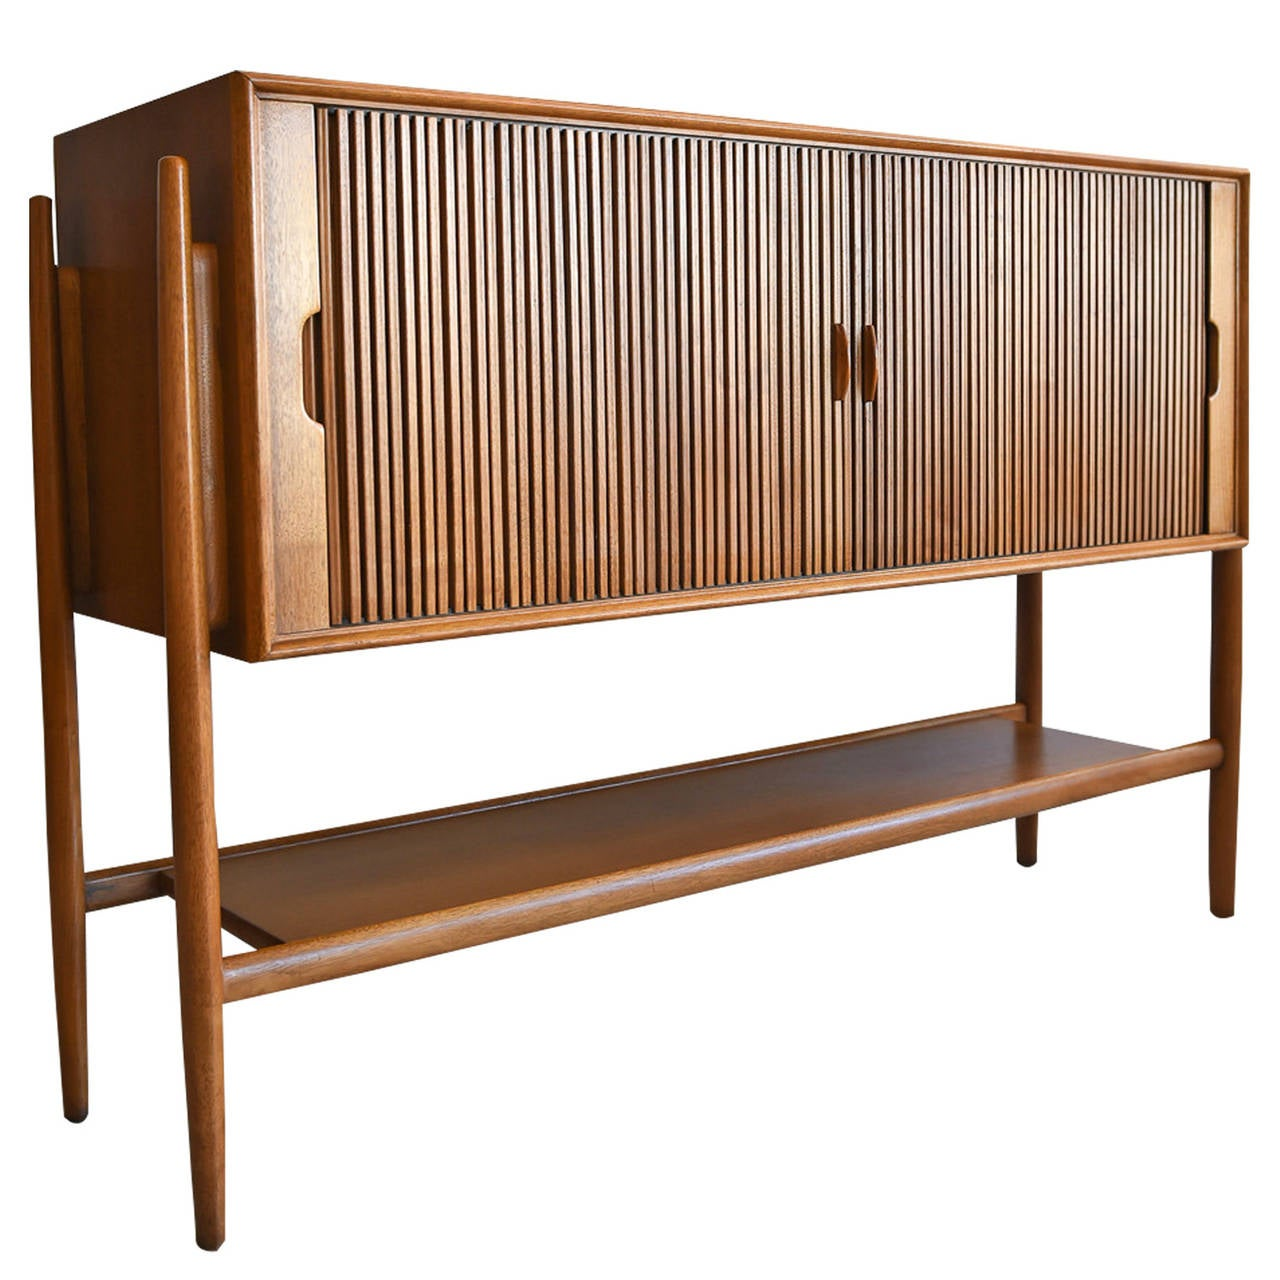 Rare Tambour Door Walnut Credenza By Barney Flagg At 1stdibs